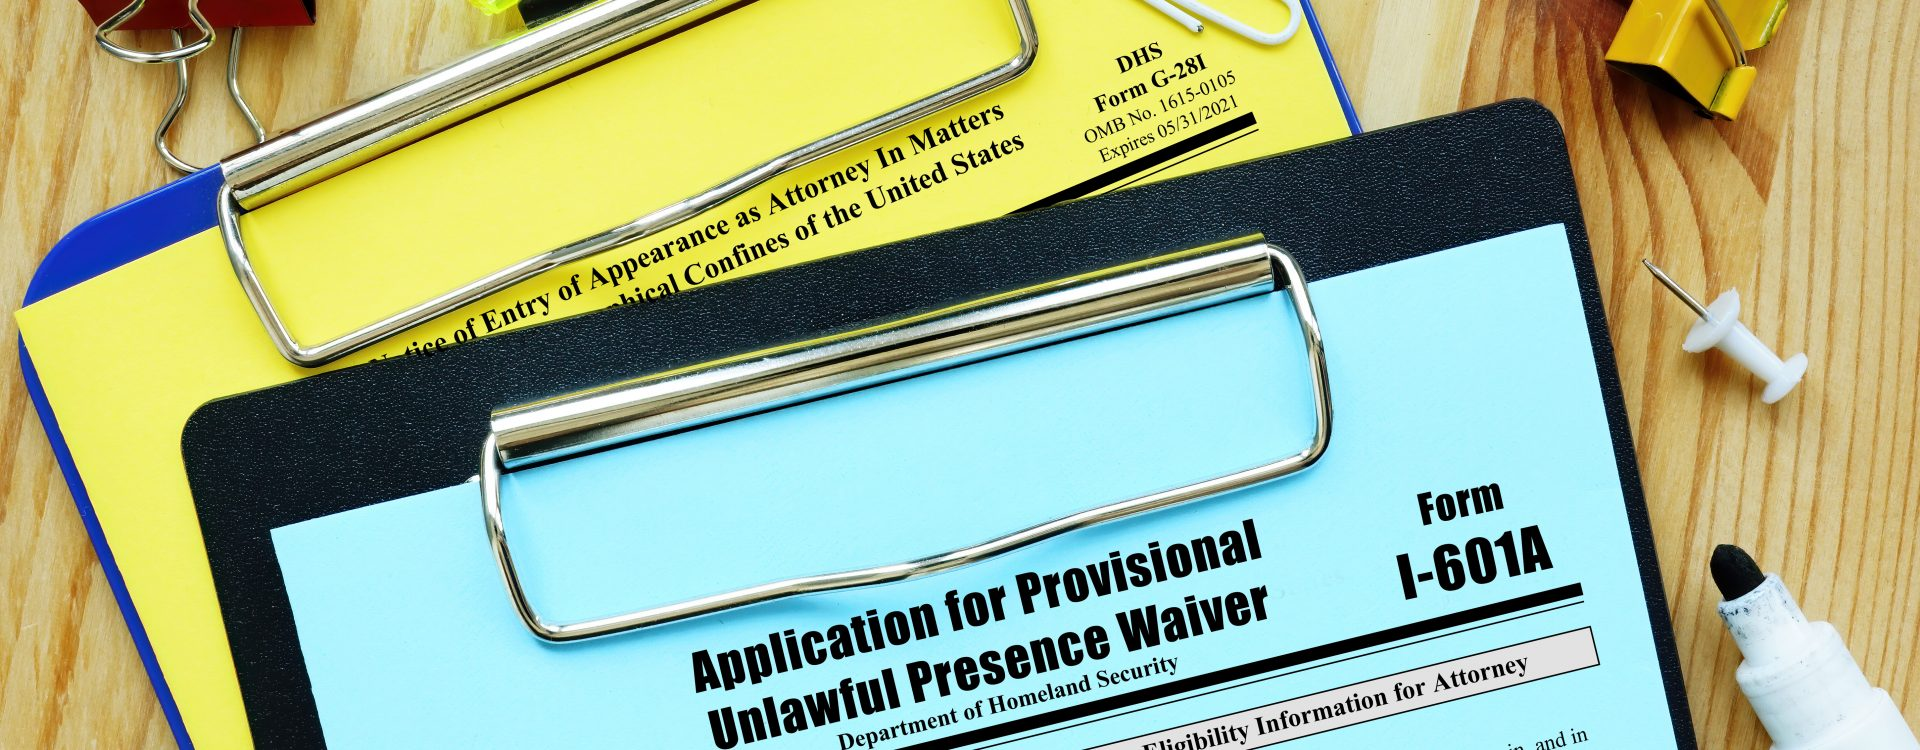 LEGAL UPDATE:  USCIS EXPANDS ELIGIBILITY FOR PROVISIONAL UNLAWFUL PRESENCE WAIVERS